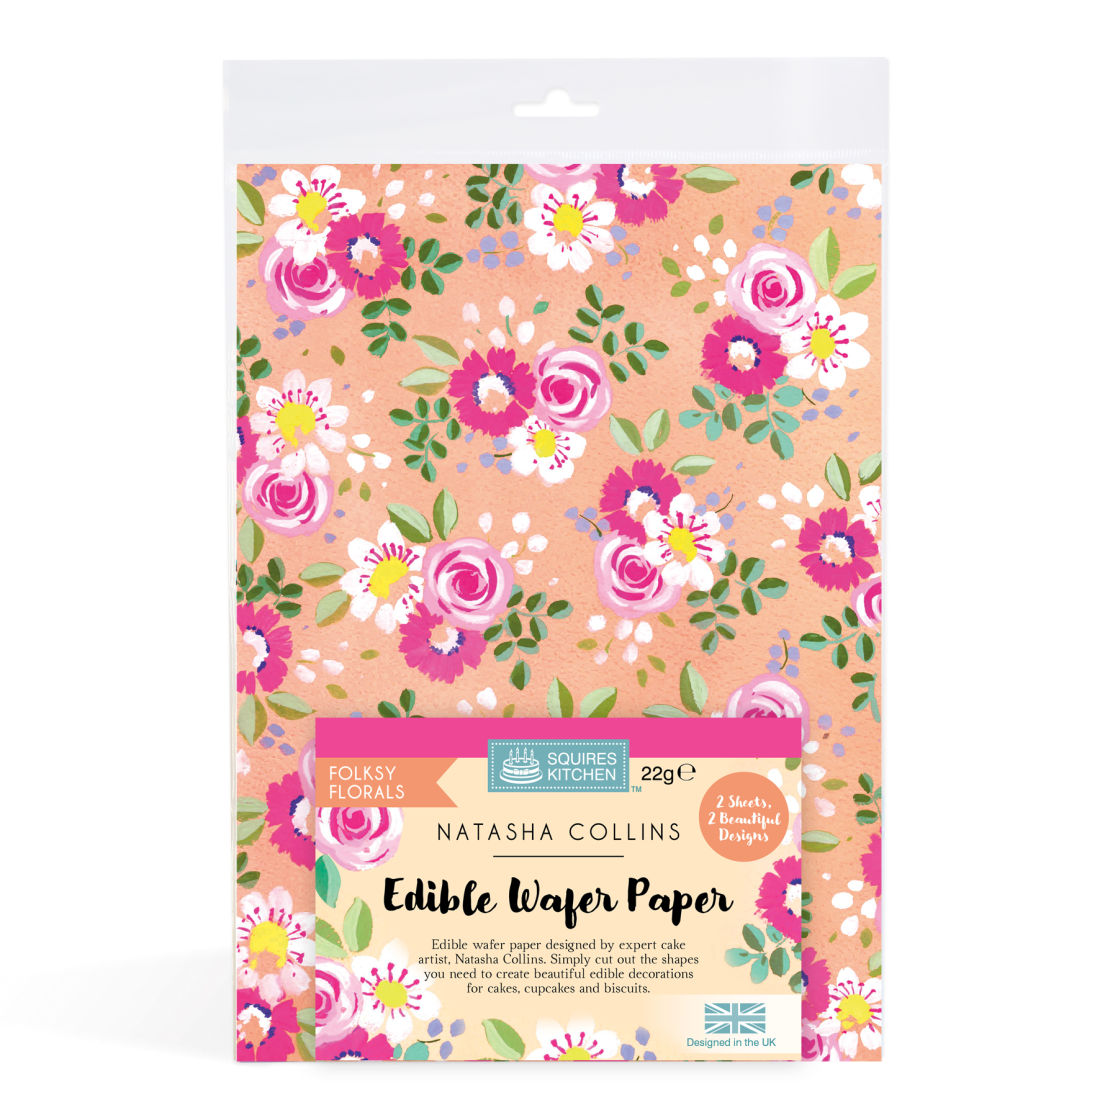 Sk Edible Wafer Paper By Natasha Collins Folksy Florals Squires